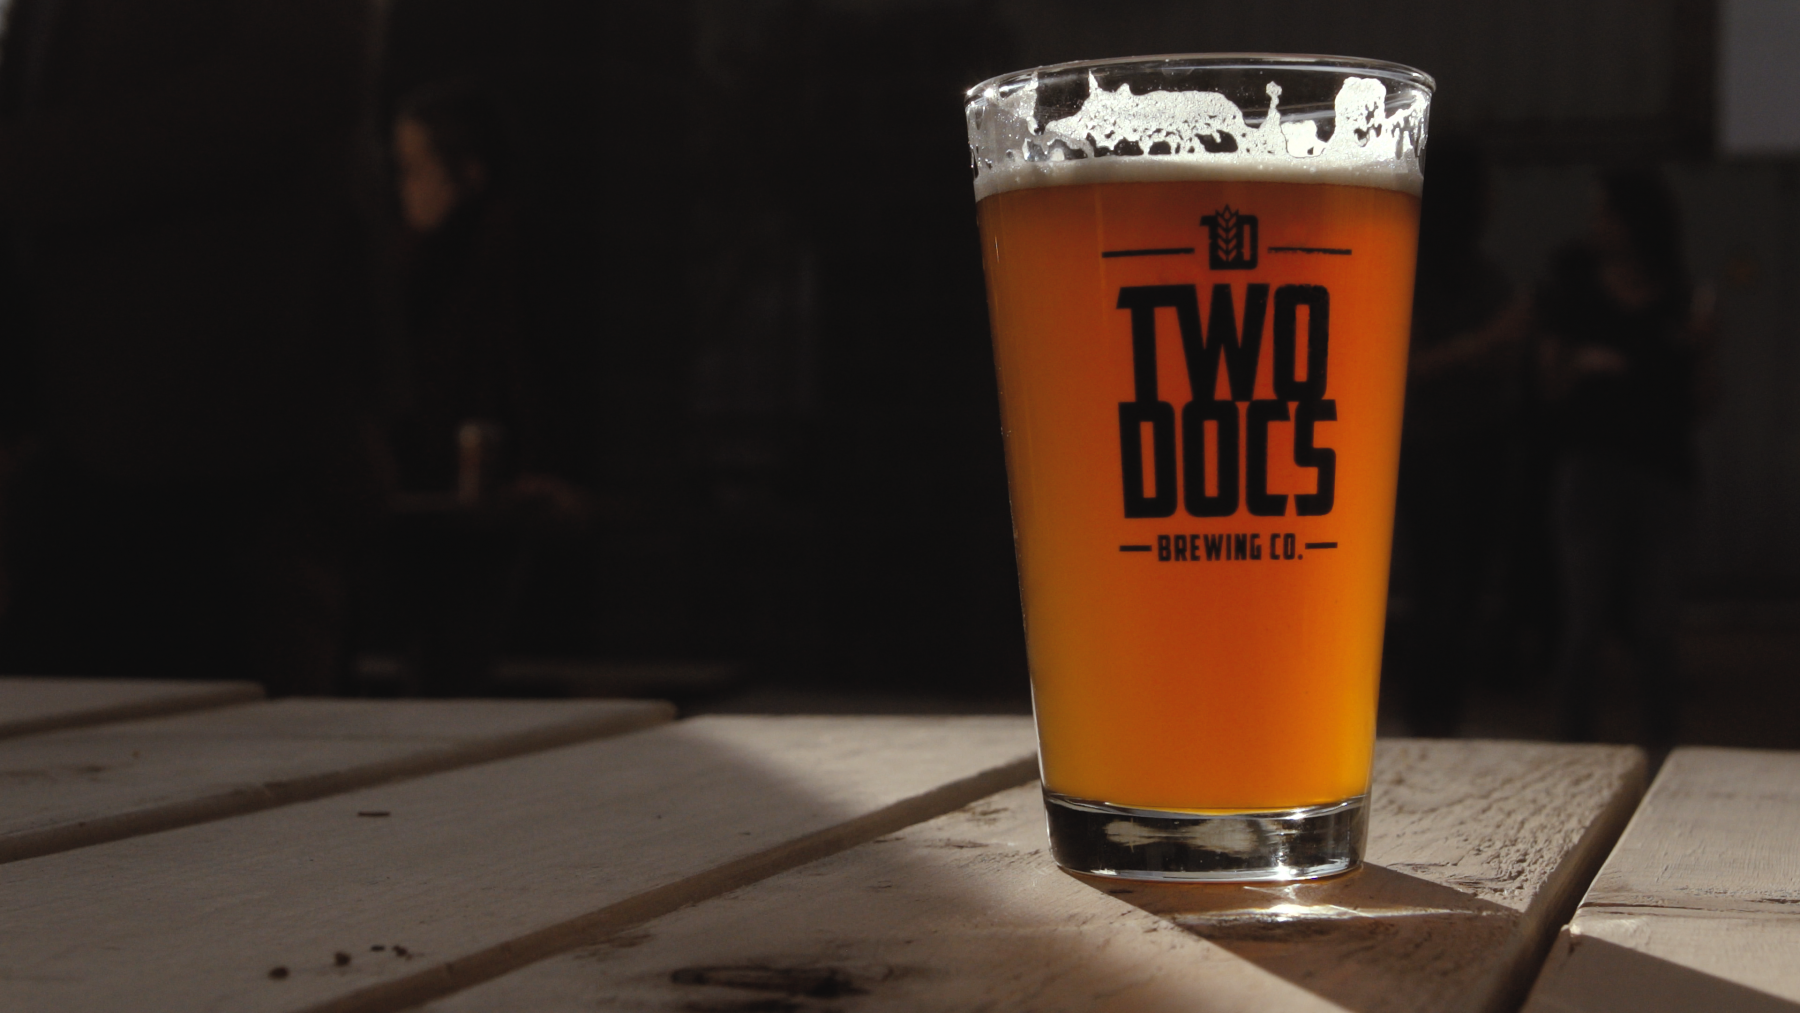 Two Docs Brewing Co. image